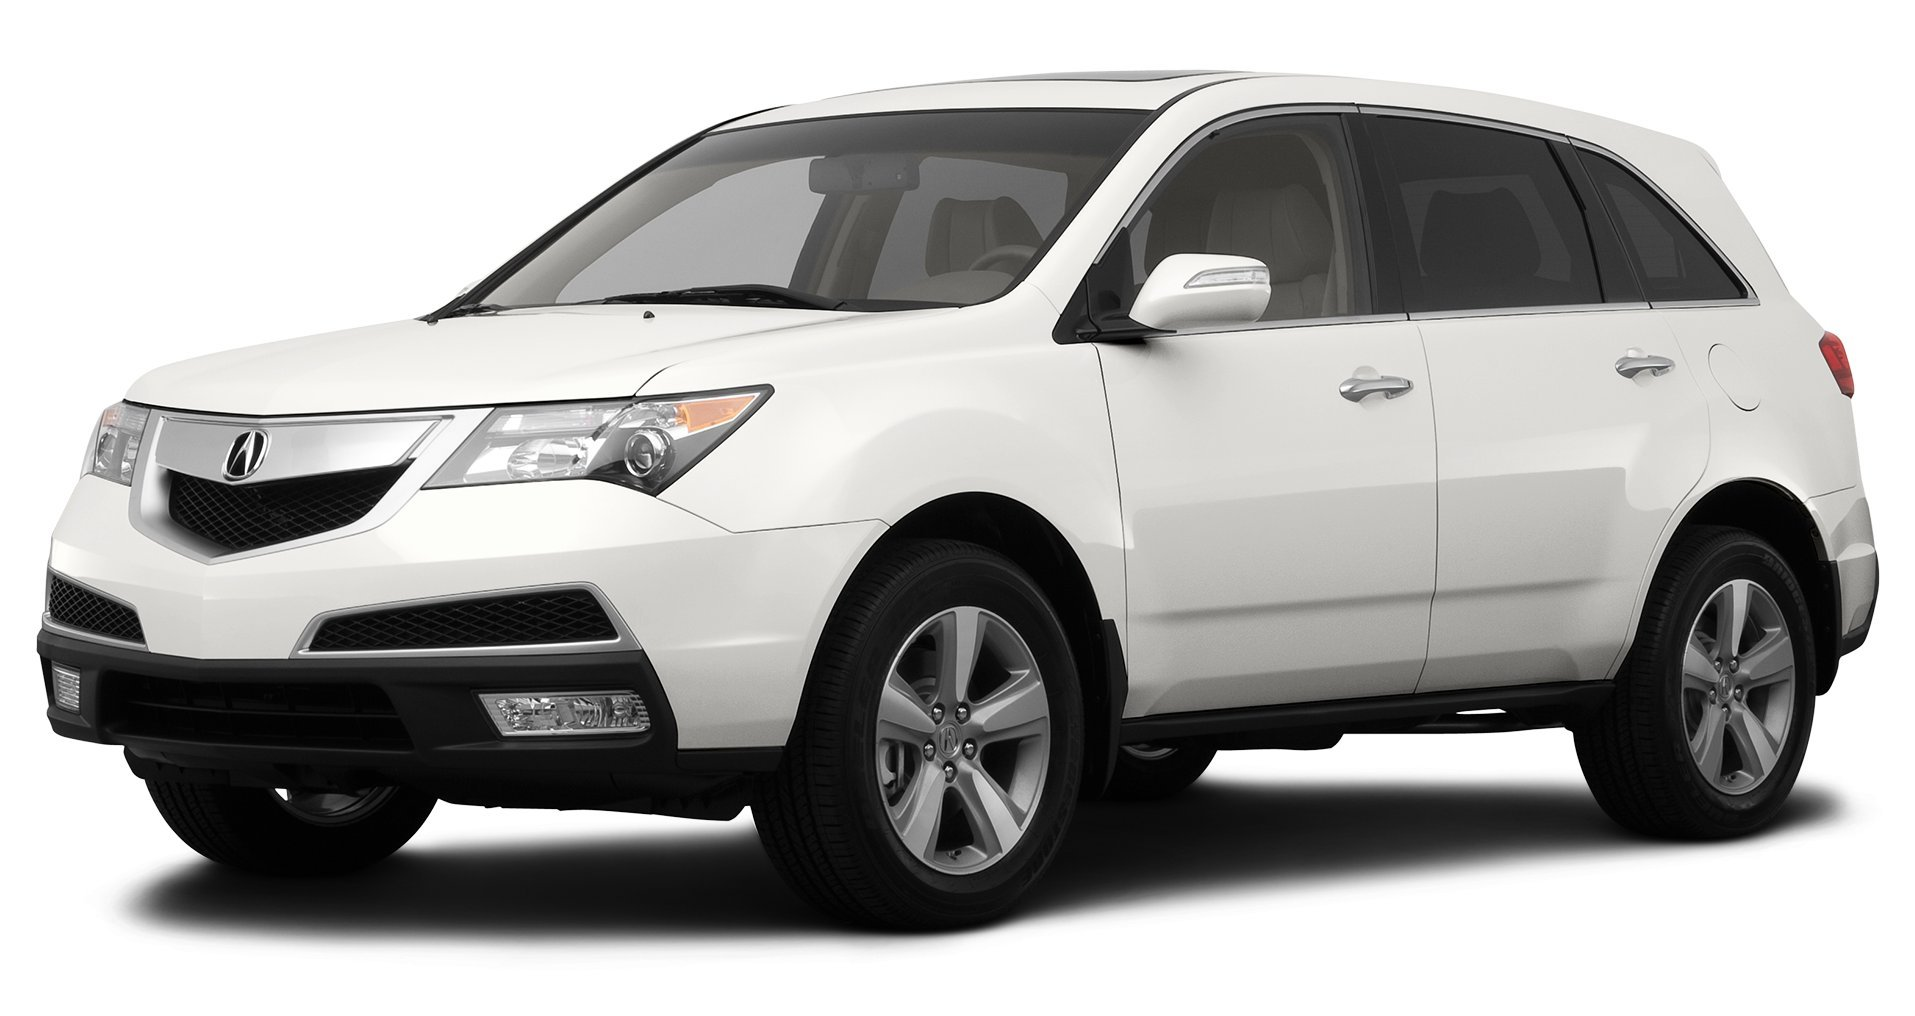 Worksheet. Amazoncom 2012 Acura MDX Reviews Images and Specs Vehicles